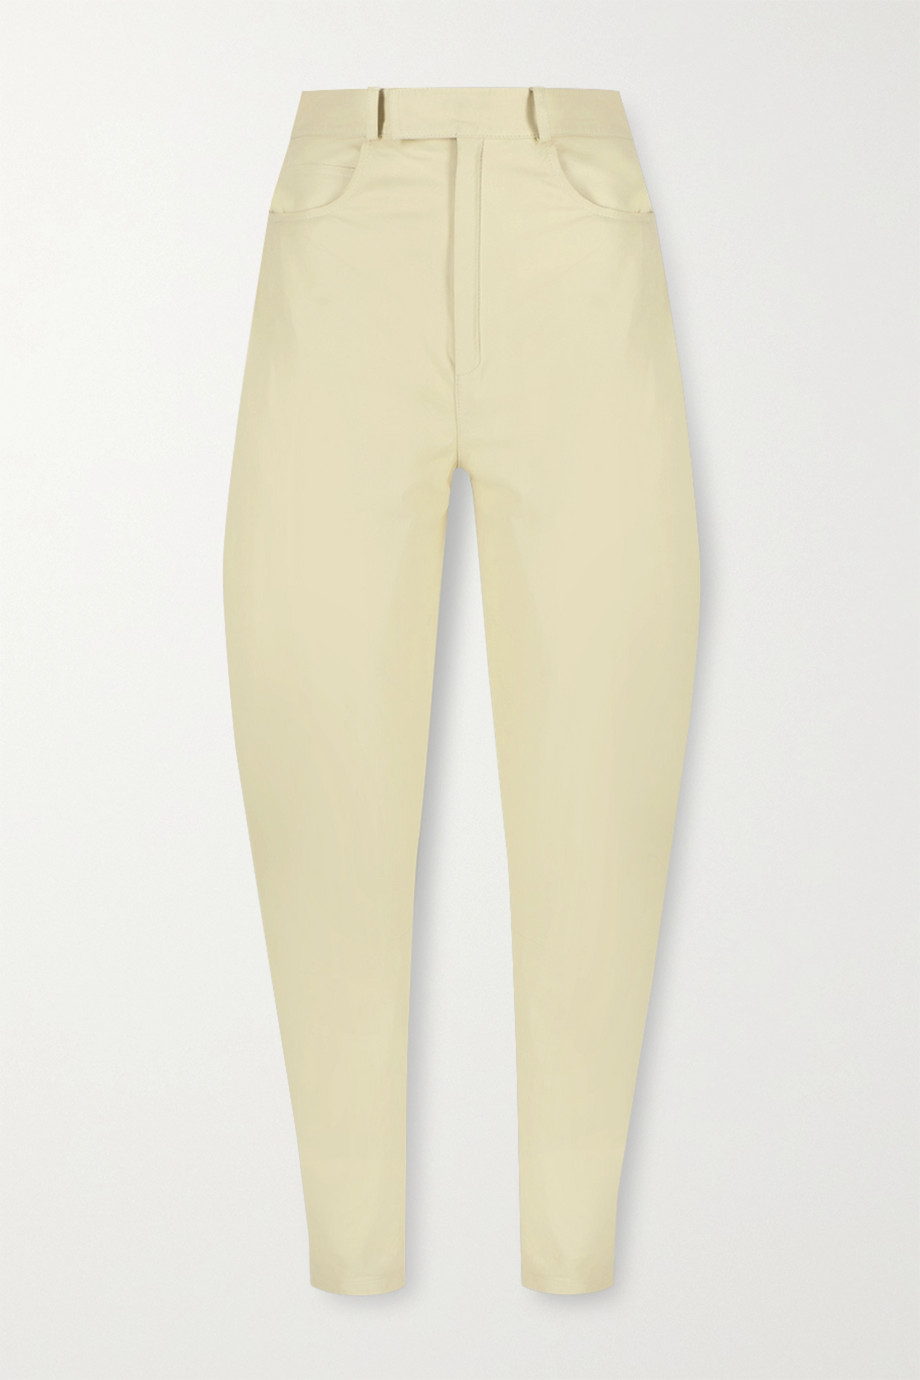 Zeynep Arcay Leather tapered pants